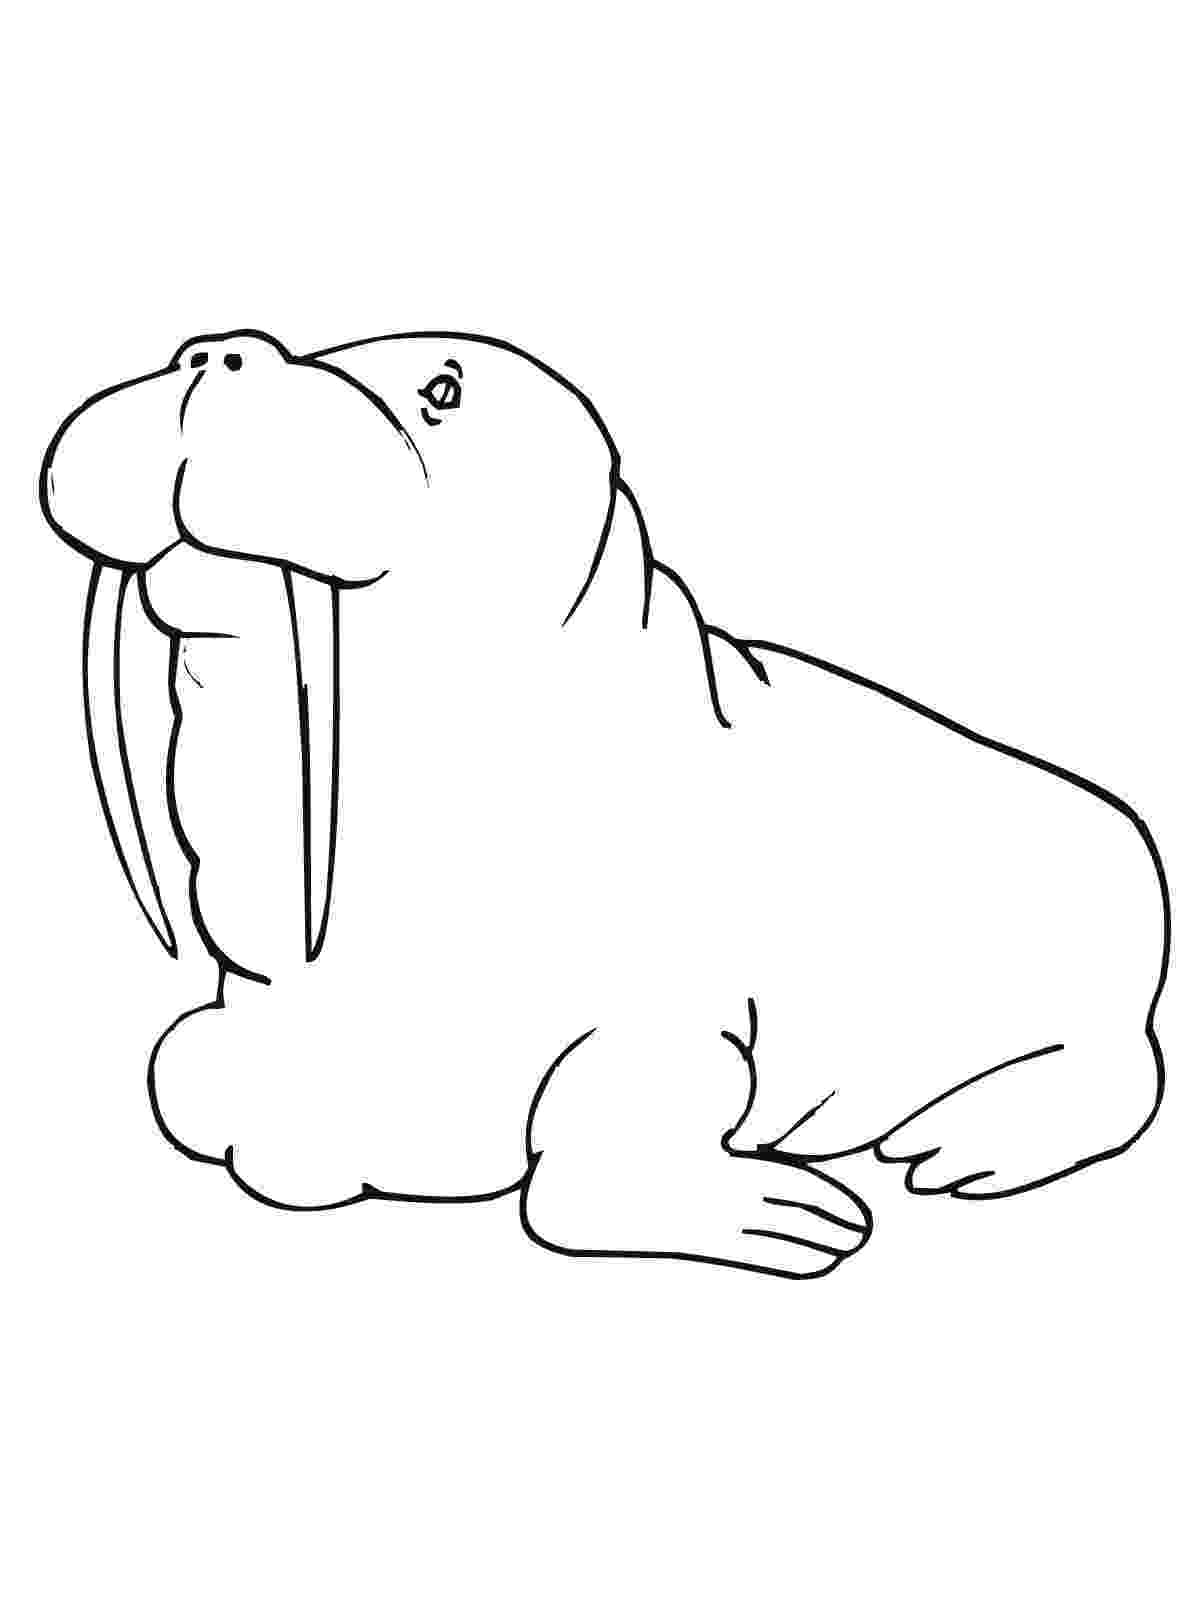 free coloring pictures printable toad coloring pages for kids cool2bkids free pictures coloring